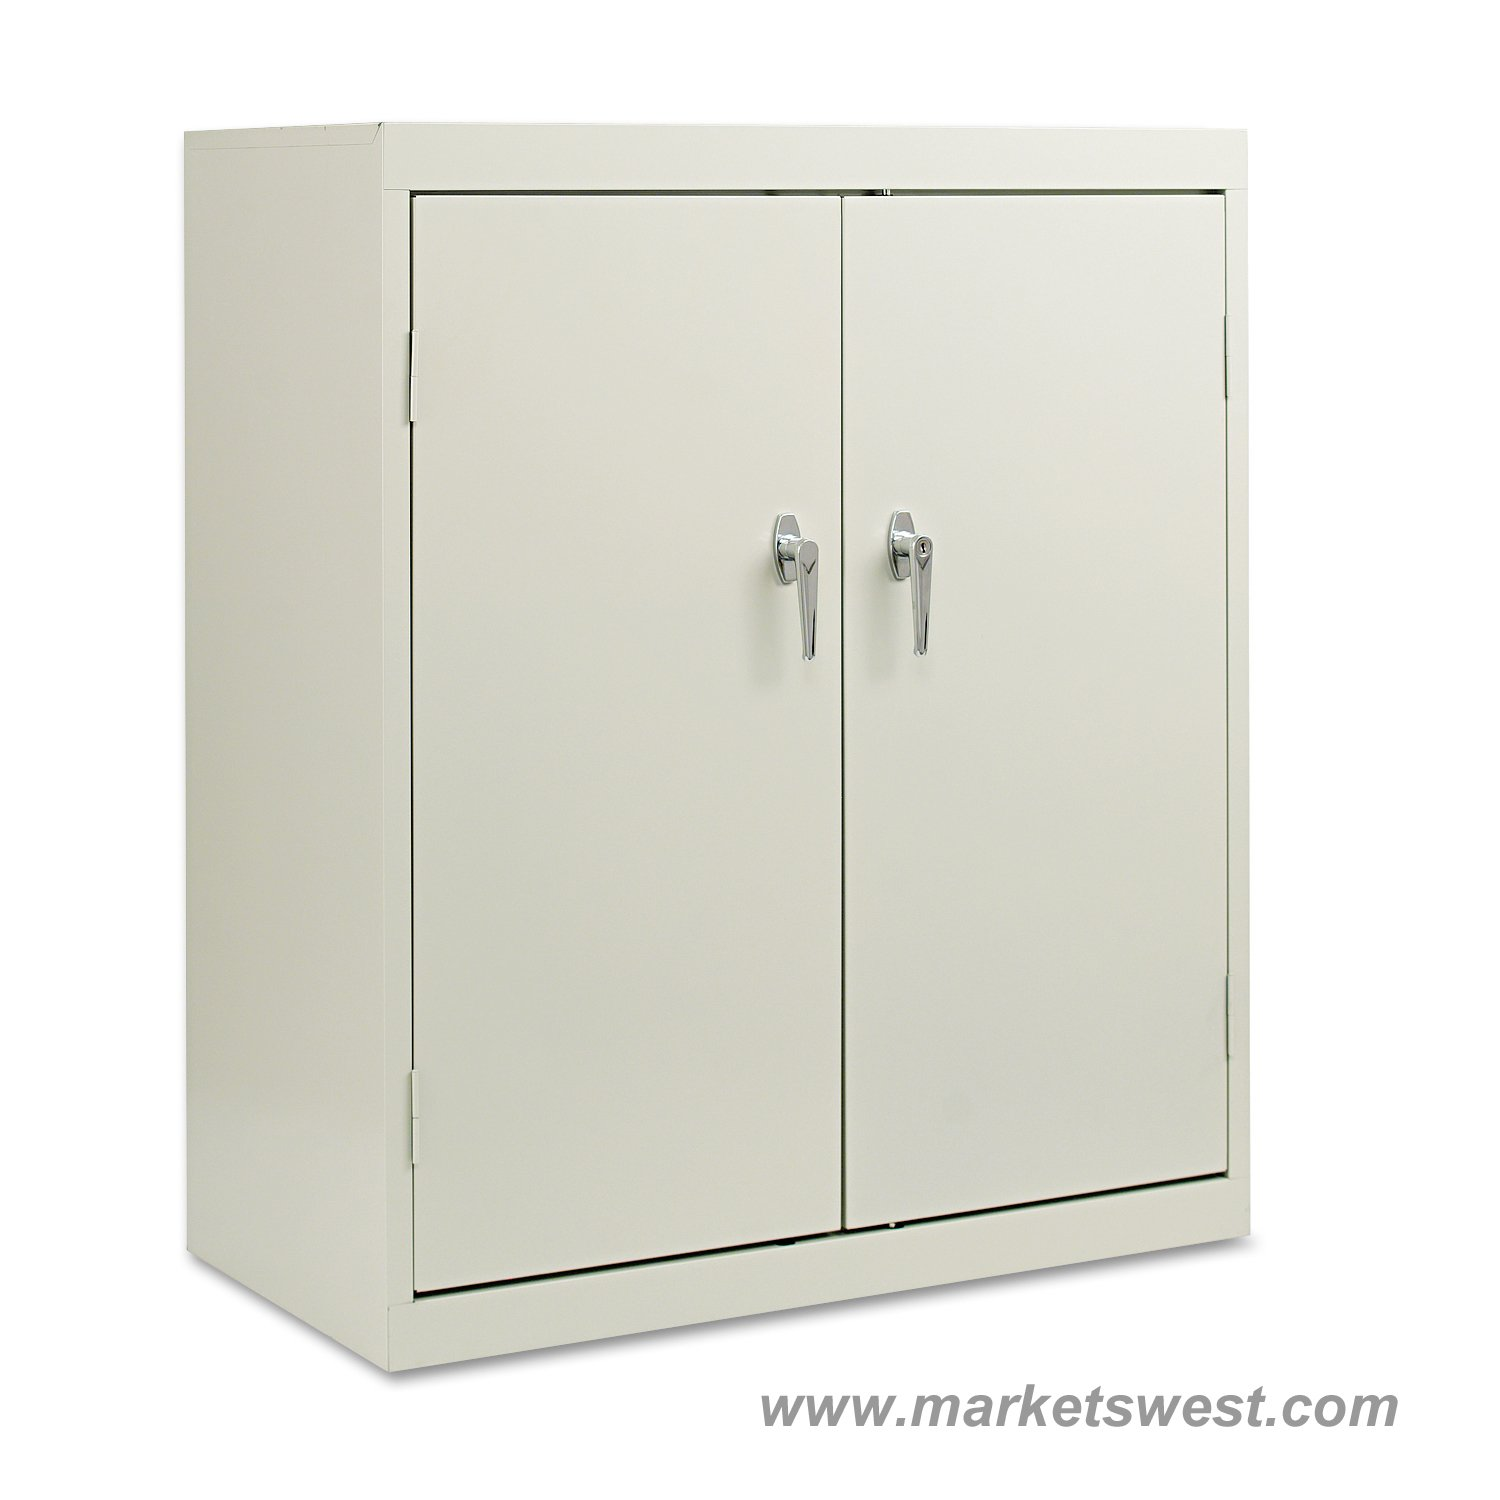 Storage Closet Alera Heavy Duty Welded Metal Storage Cabinet 42x36x18